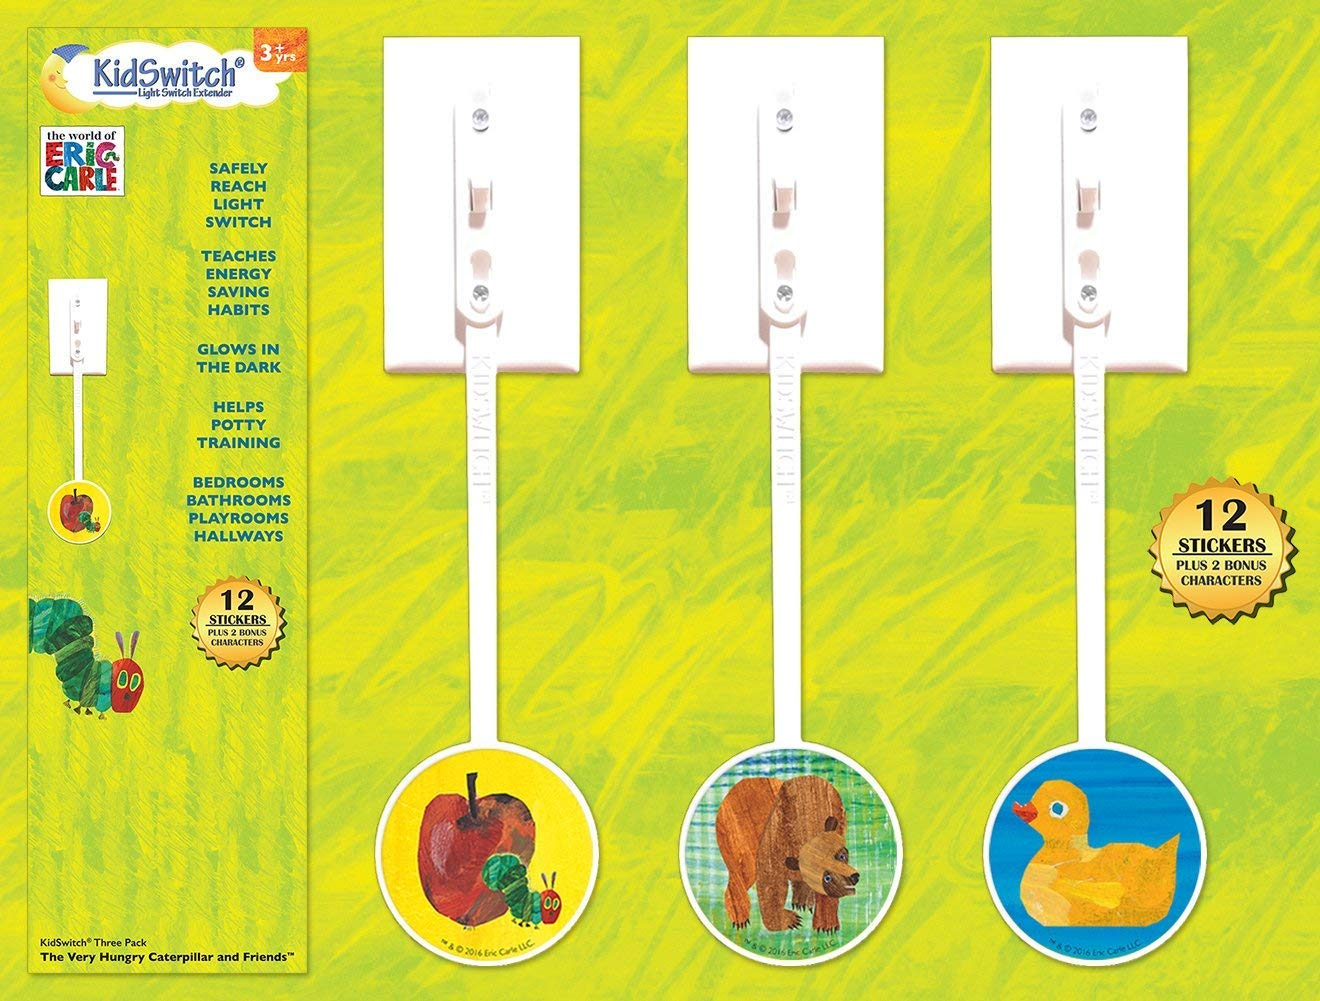 Amazon.com : KidSwitch Light Switch Extender 3 Pack   The World Of Eric  Carle Edition : Baby